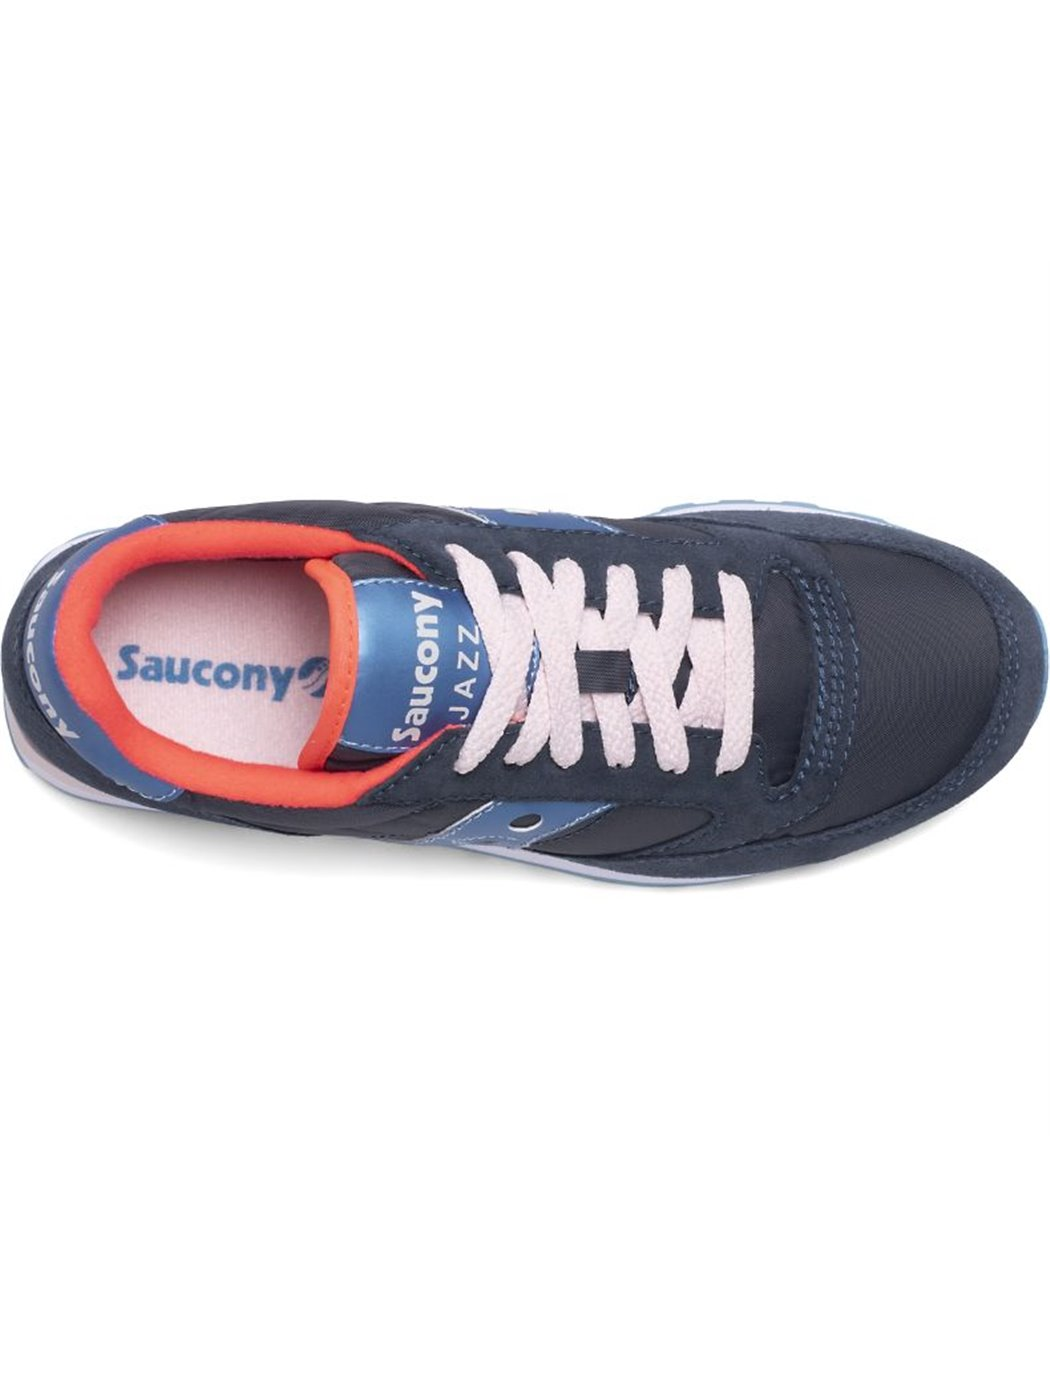 SAUCONY 1044-571 NAVY-BLUE SNEAKERS